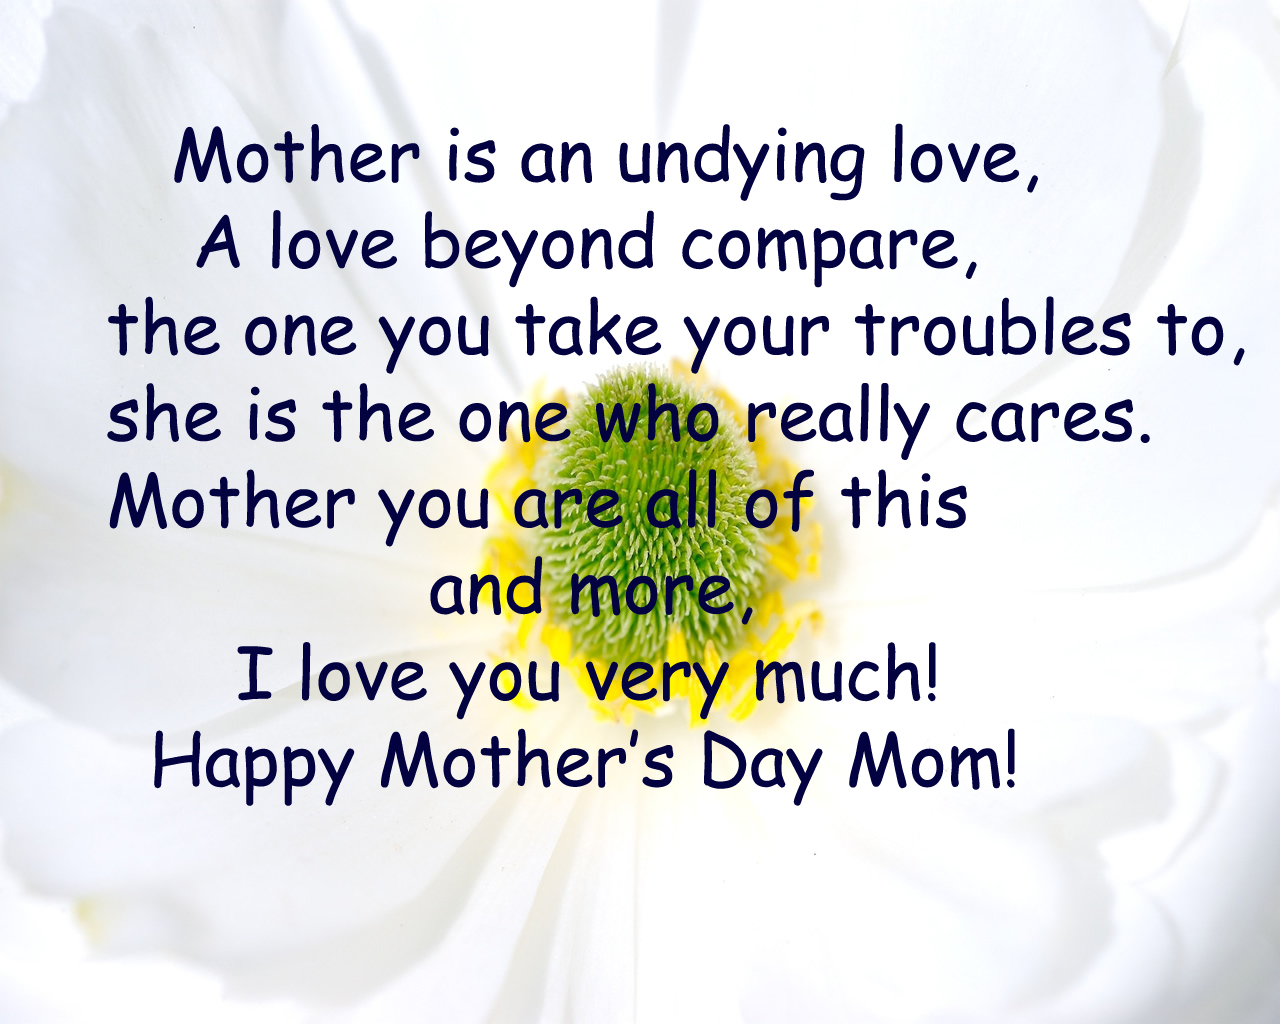 Quotes On Mothers Day In Punjabi – Daily Motivational Quotes